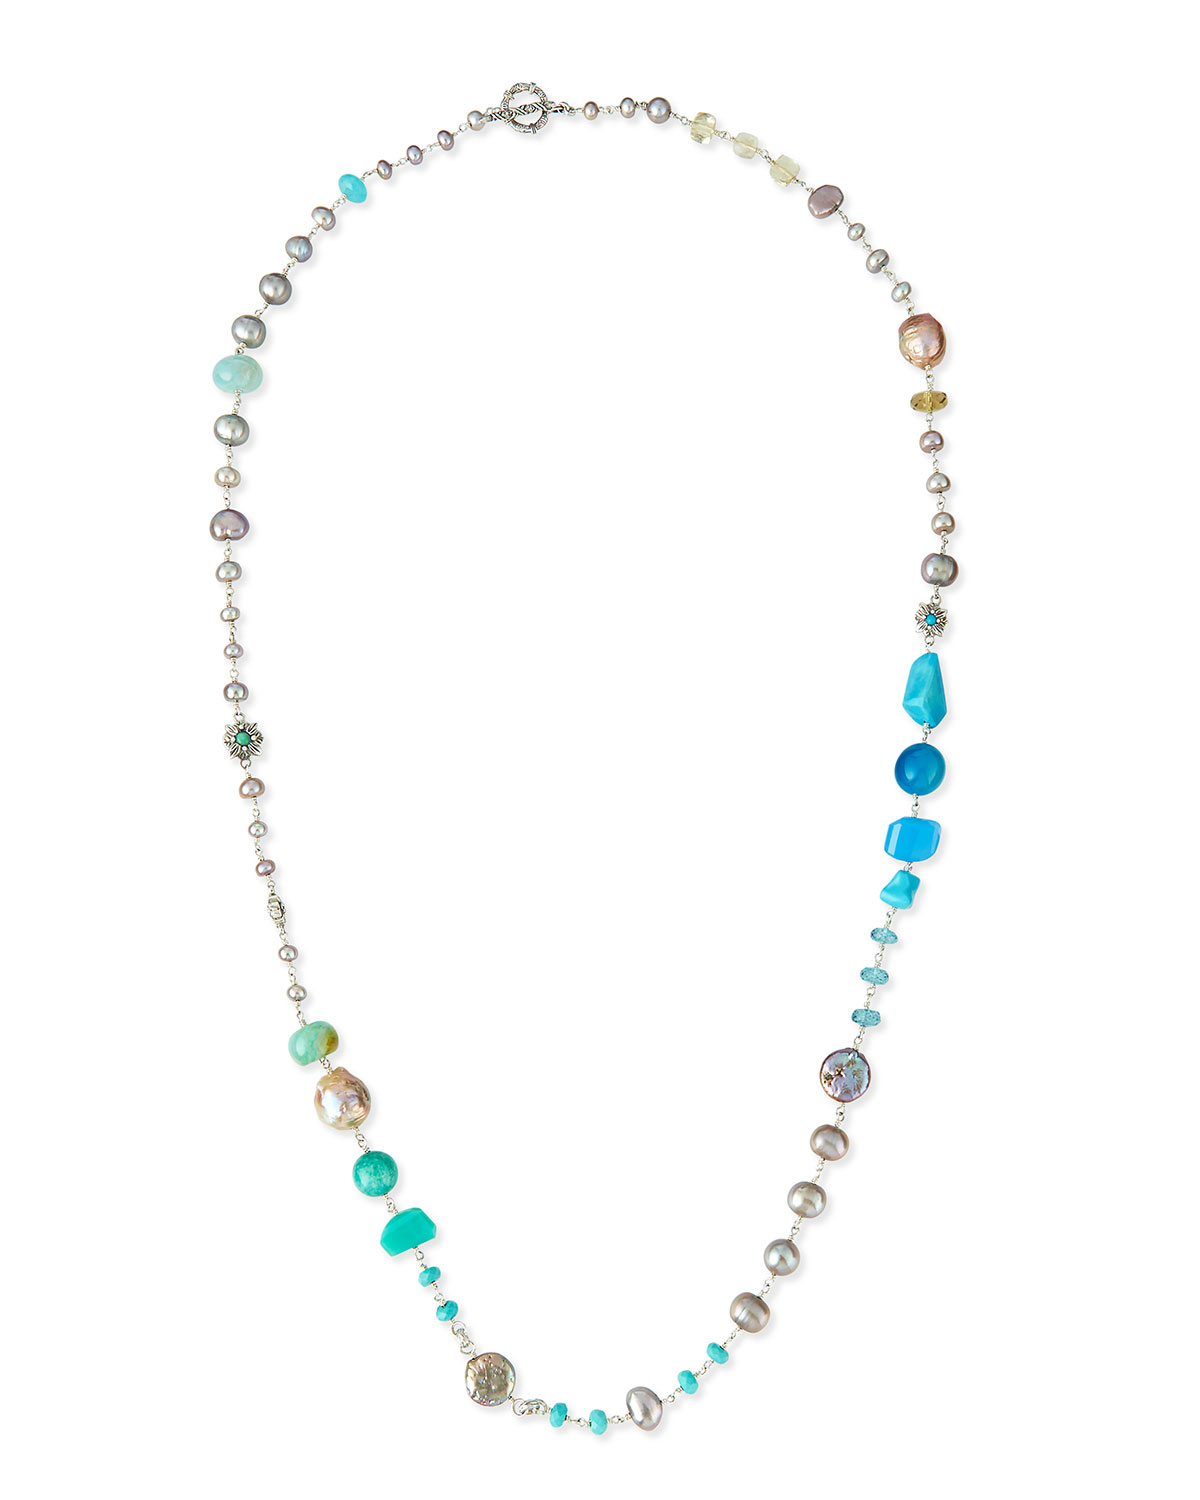 Ippolita Stella London Blue Topaz Diamond Sterling Silver Mini Pendant Necklace Silver Blue further Msi Quartz Countertops Colours together with A C3 B1o Nuevo Mapuche Para Colorear as well David Yurman Petite Pave Curb Chain Necklace With Black Diamonds furthermore Caesarstone Quartz Colors. on lagos to london